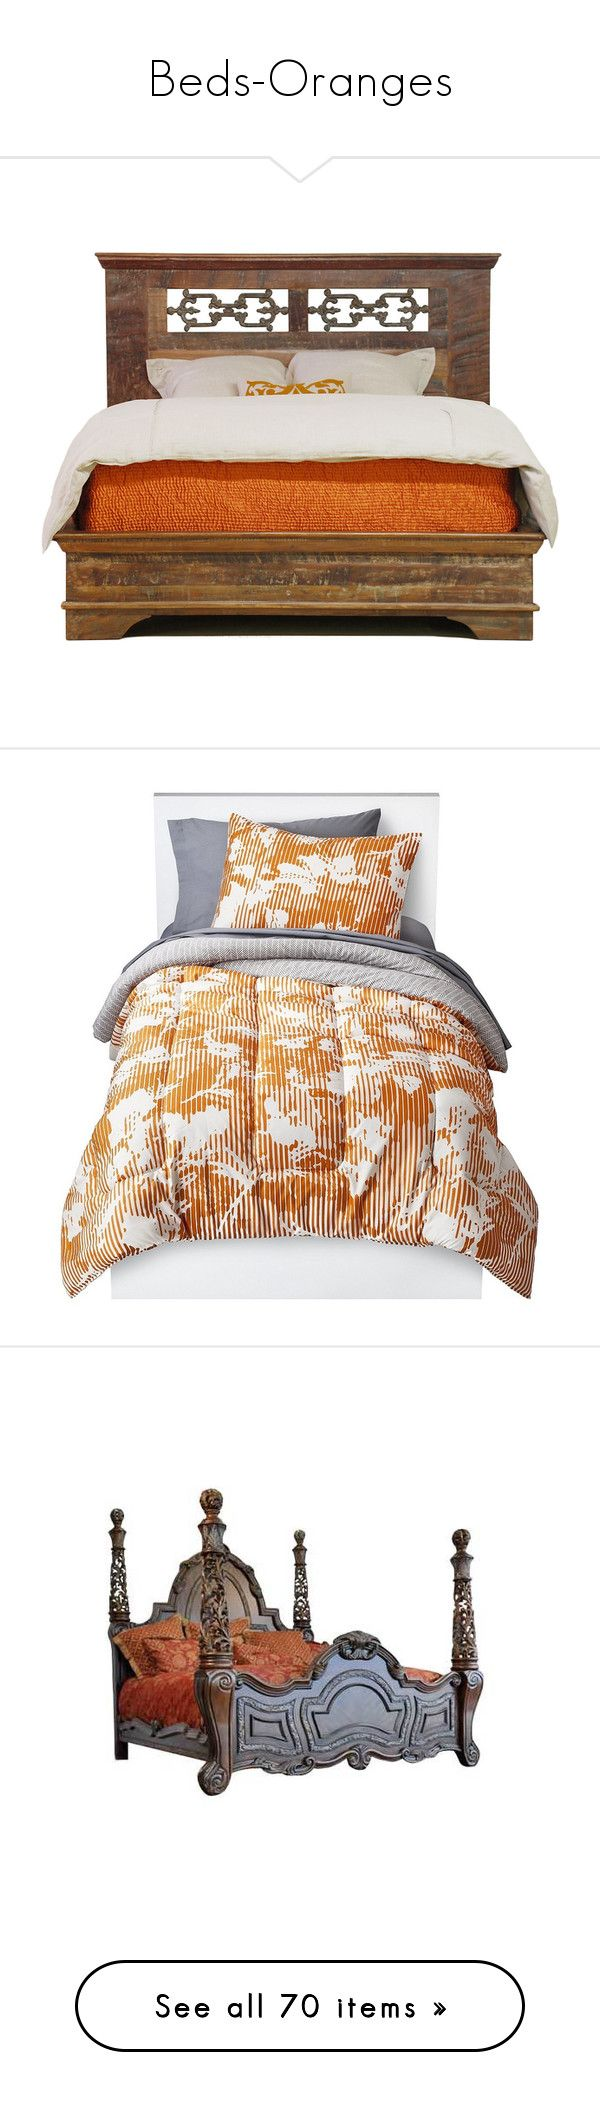 """""""Beds-Oranges"""" by shadows-of-design ❤ liked on Polyvore featuring bed, furniture, bedroom, camas, home, beds, bed & bath, bedding, orange pillow cases and orange bed set"""